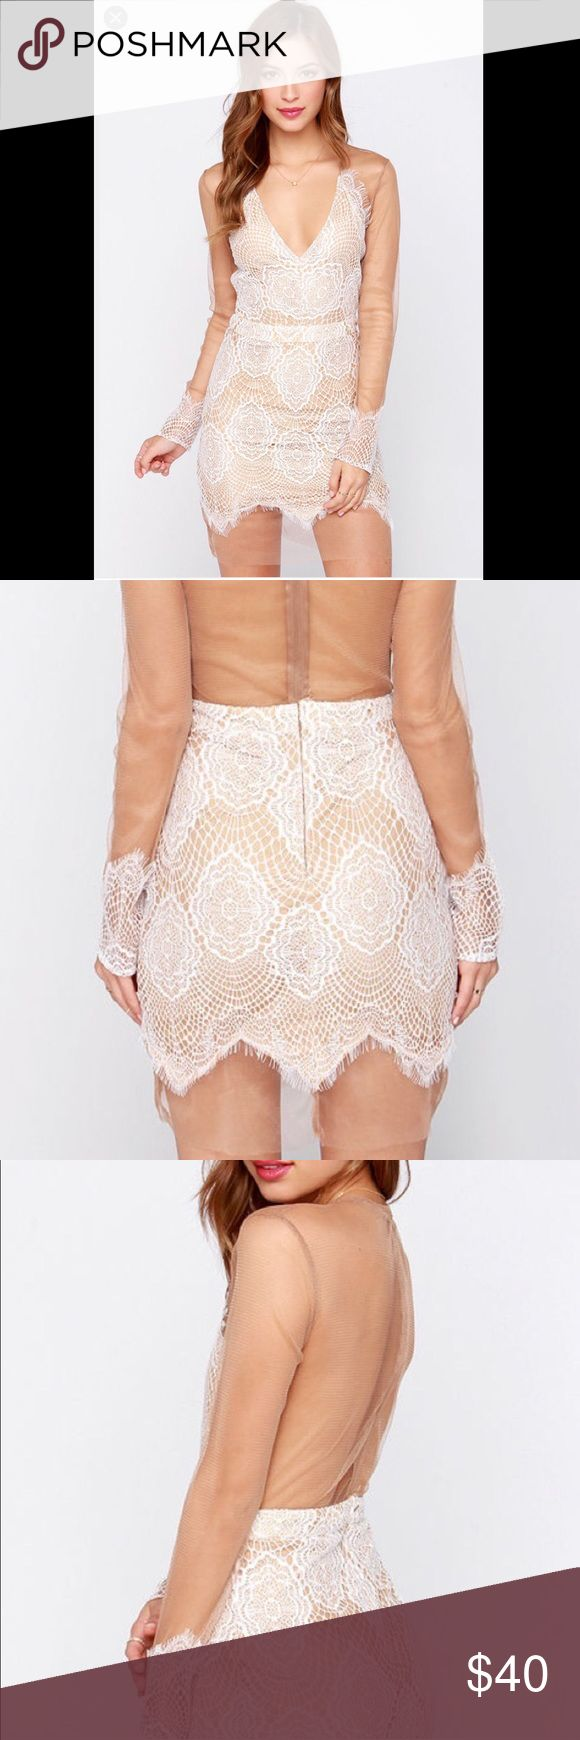 For Love & Lemons Inspired Tan & Ivory Lace Dress Worn only once for my birthday. A very cute and sexy dress in good condition. Luxxel Dresses Mini